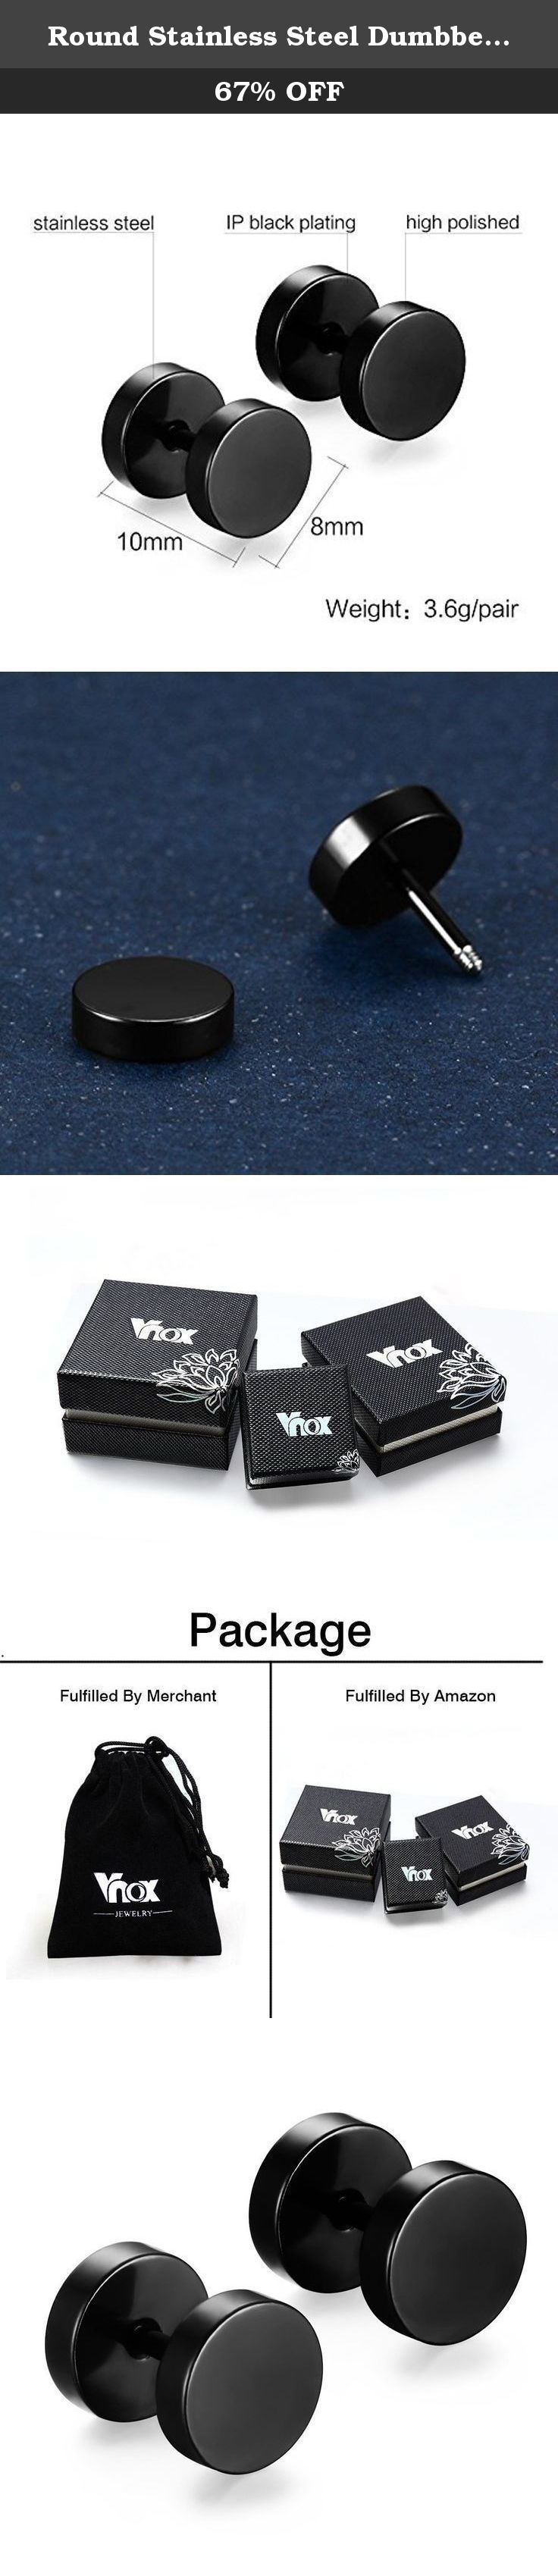 Round Stainless Steel Dumbbell Ear Stud Earrings for Unisex,Black. The Vnox Discover the Vnox of elaborate and fashion jewelry. The high-quality jewelry featured in the Vnox offers great values at affordable Price, they mainly made of high quality Stainless Steel,Tungsten,Alloy and Leather. Find a special gift for a loved one or a beautiful piece that complements your personal style with jewelry from the Vnox. Stainless Steel Stainless steel has increasingly grown as a popular metal…